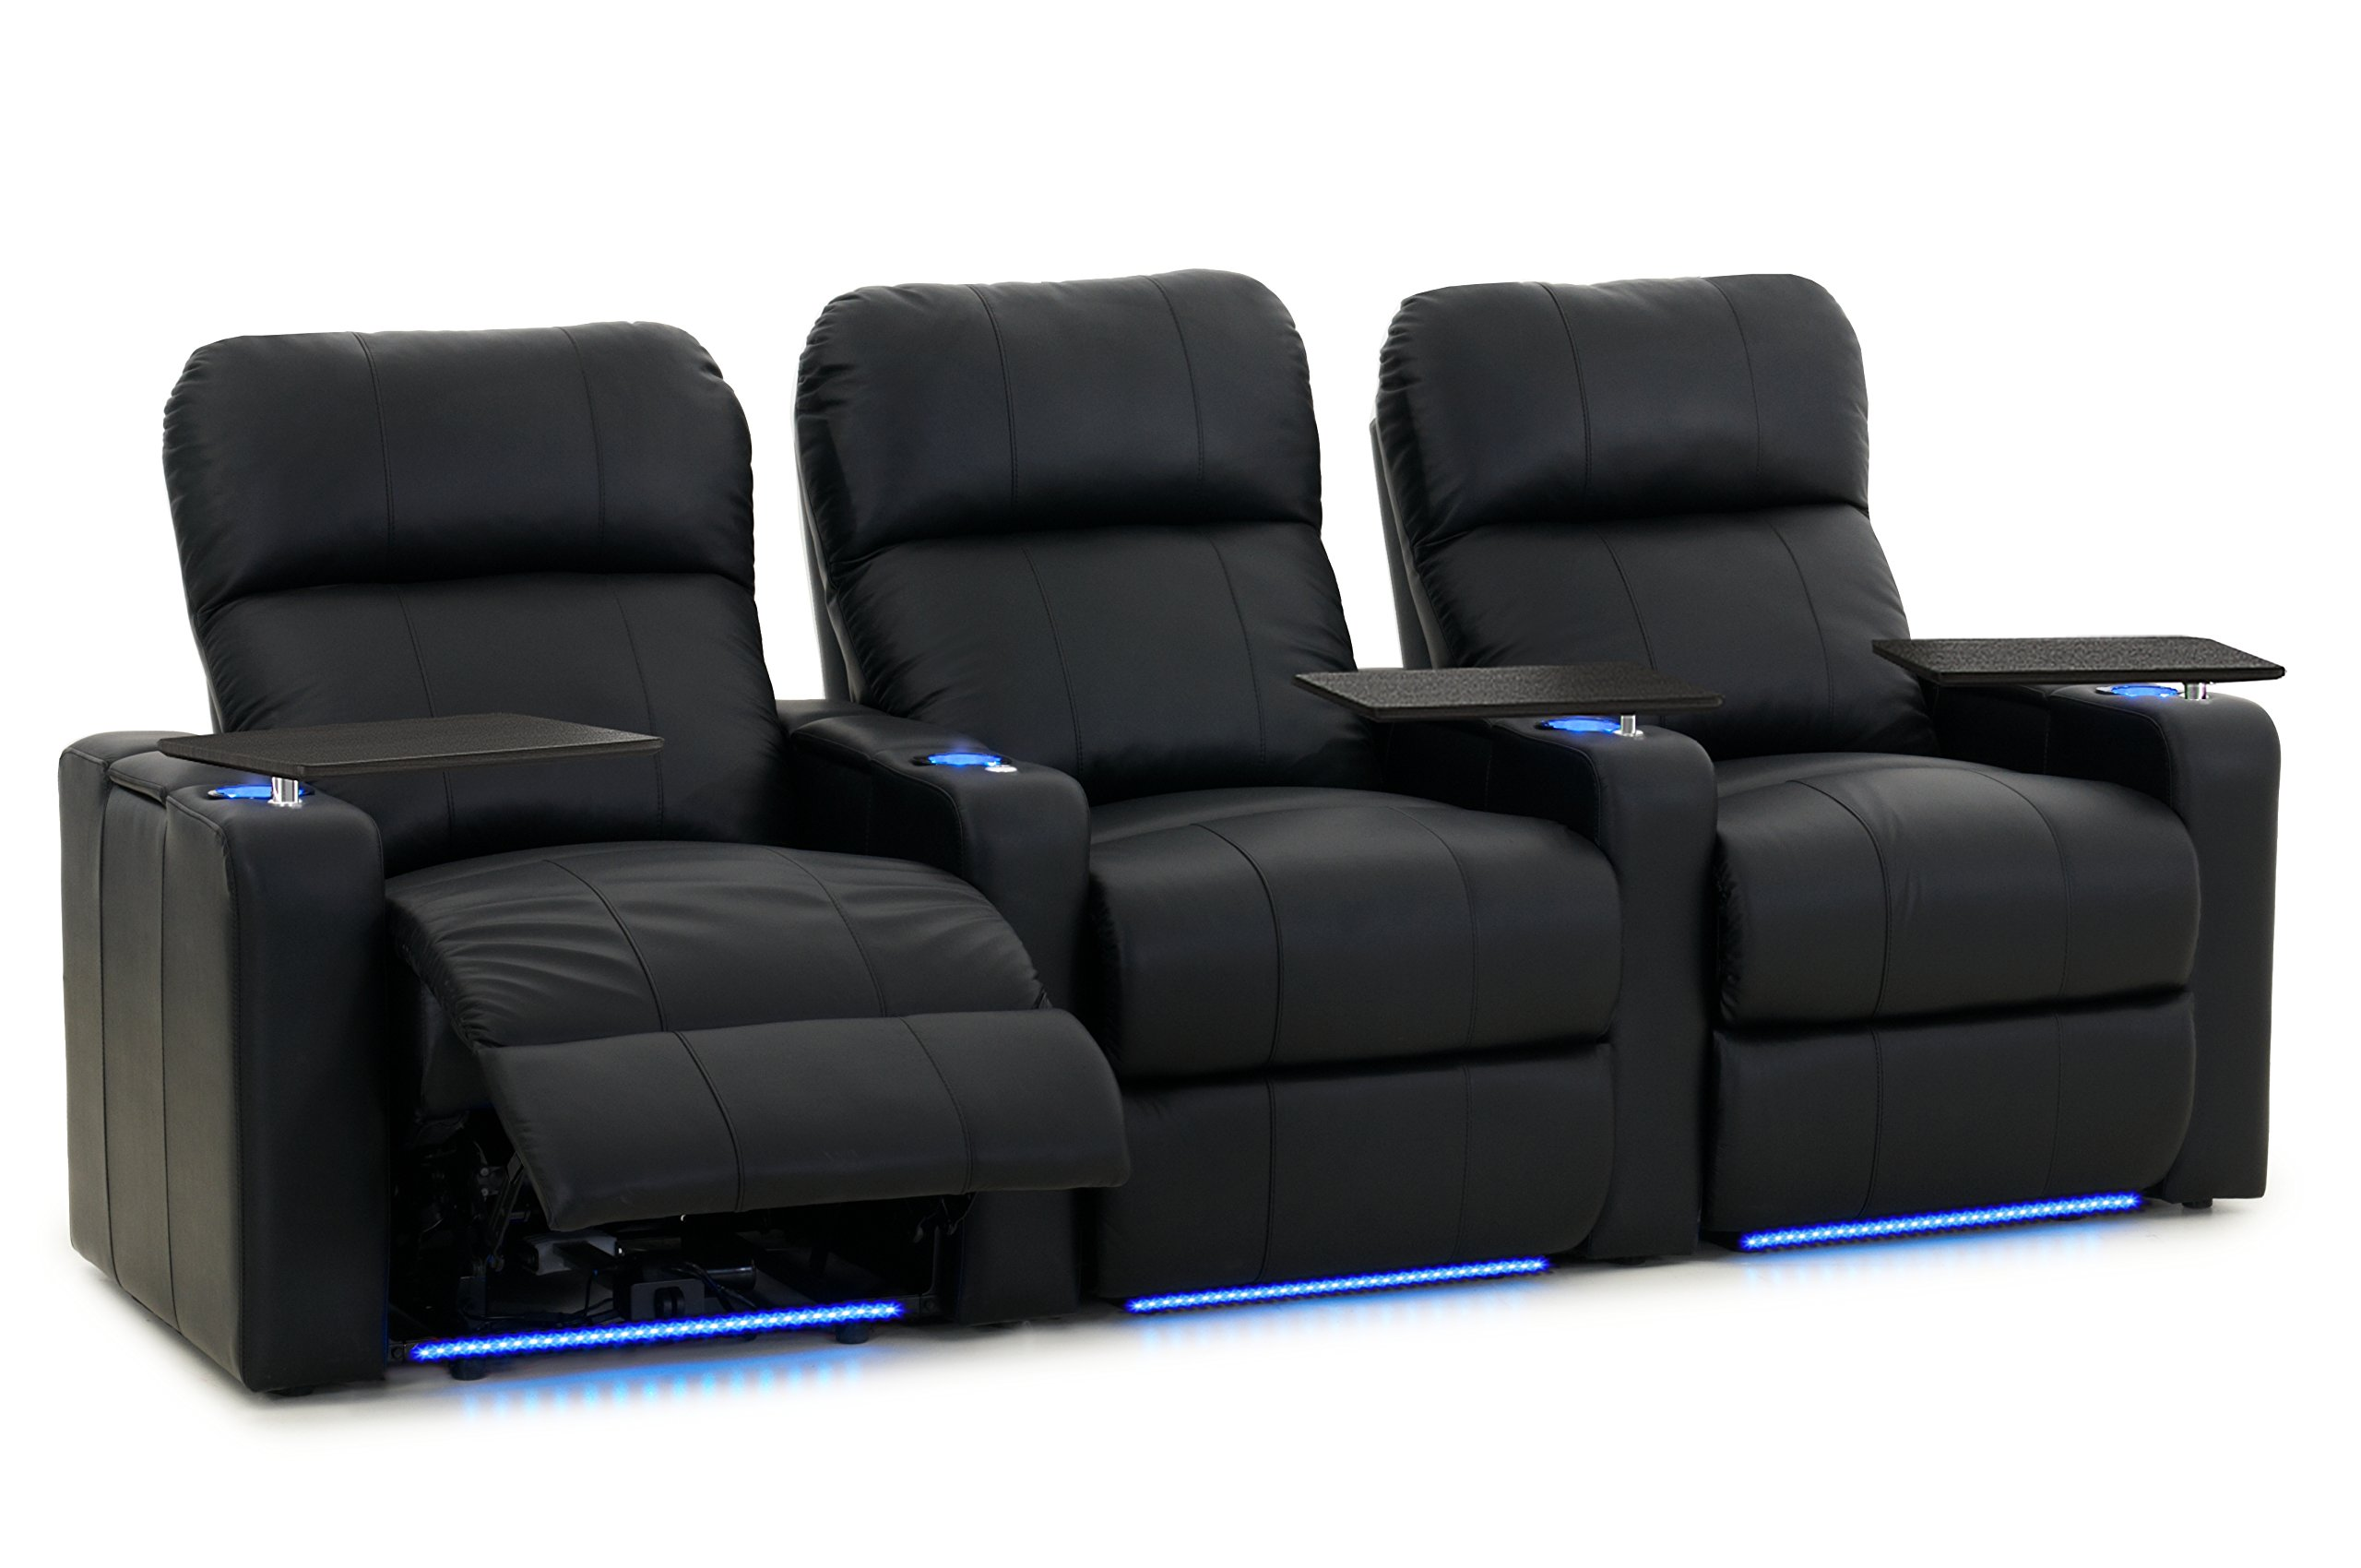 Octane Turbo XL700 Row of 3 Seats, Straight Row in Black Bonded Leather with Power Recline